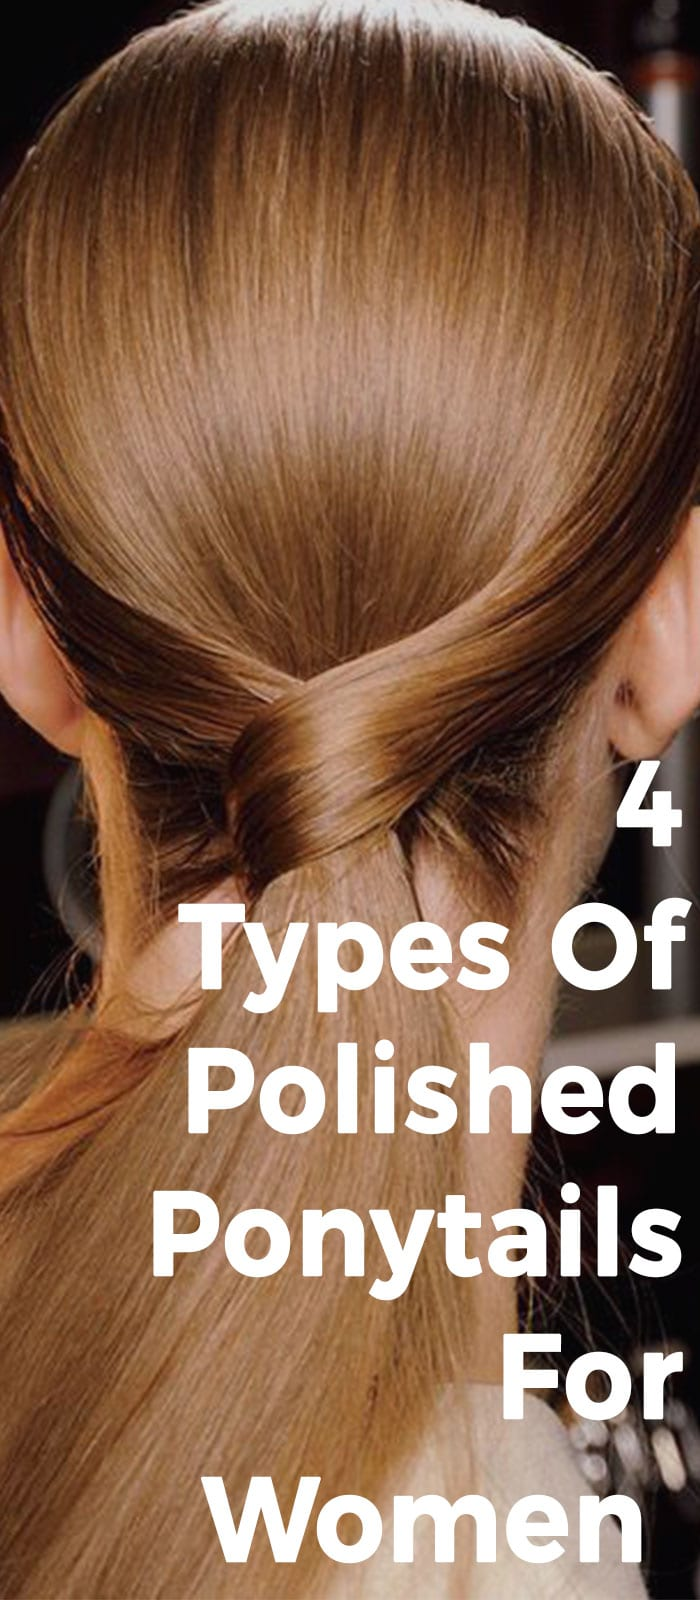 4 Types Of Polished Ponytails For Women